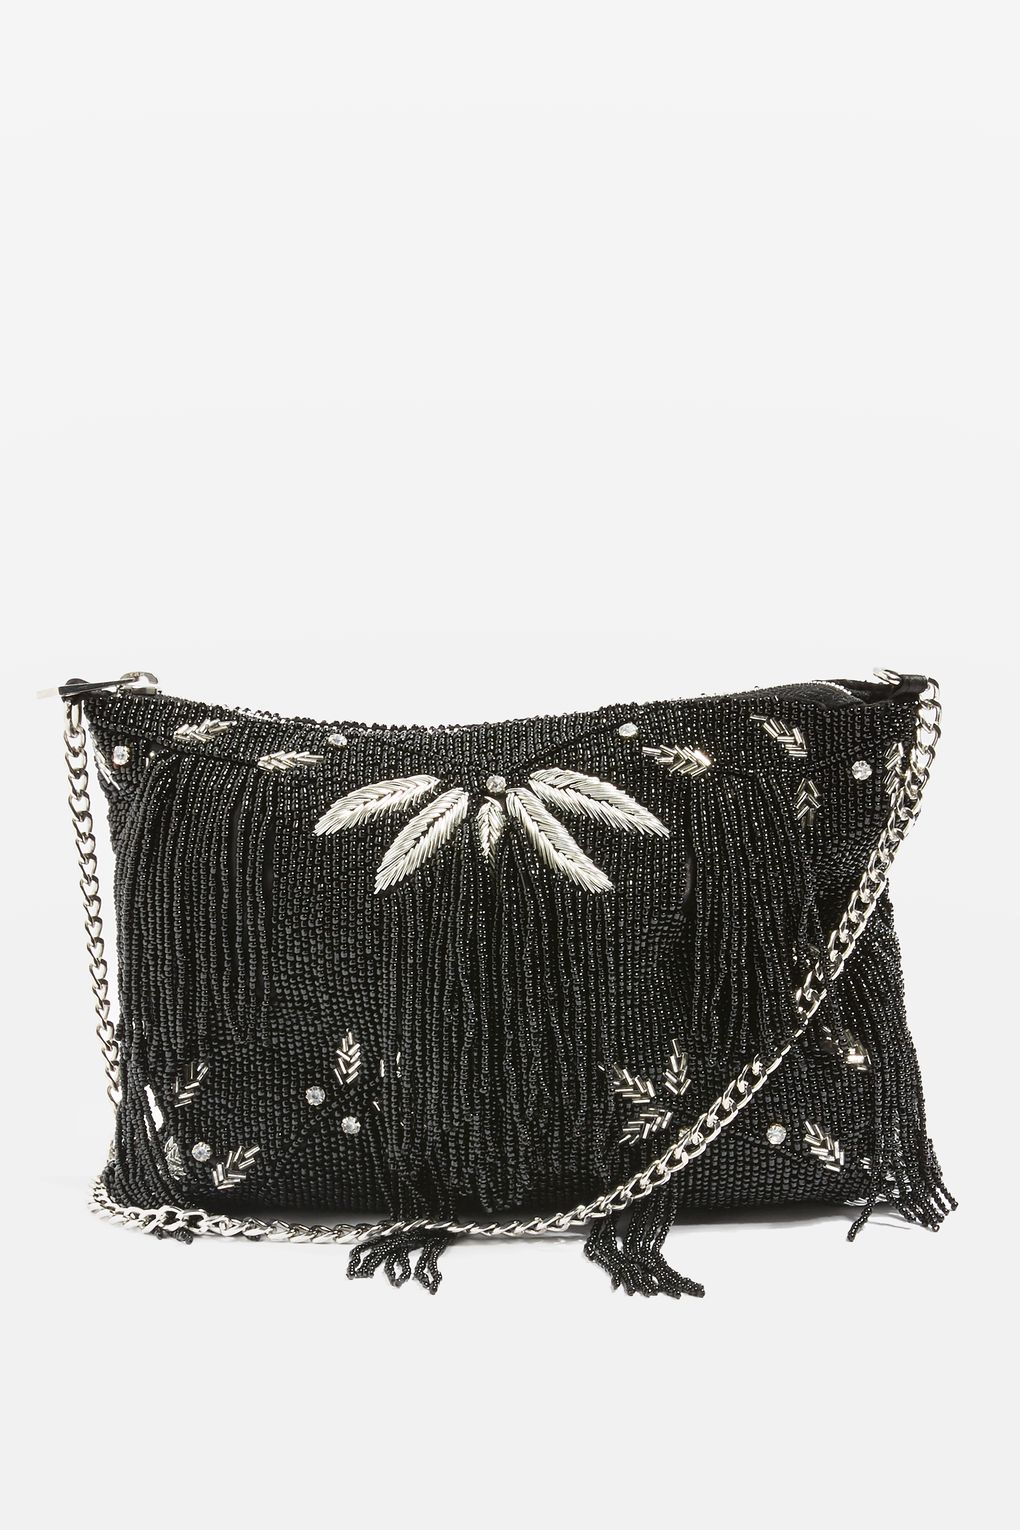 Topshop embellished bag